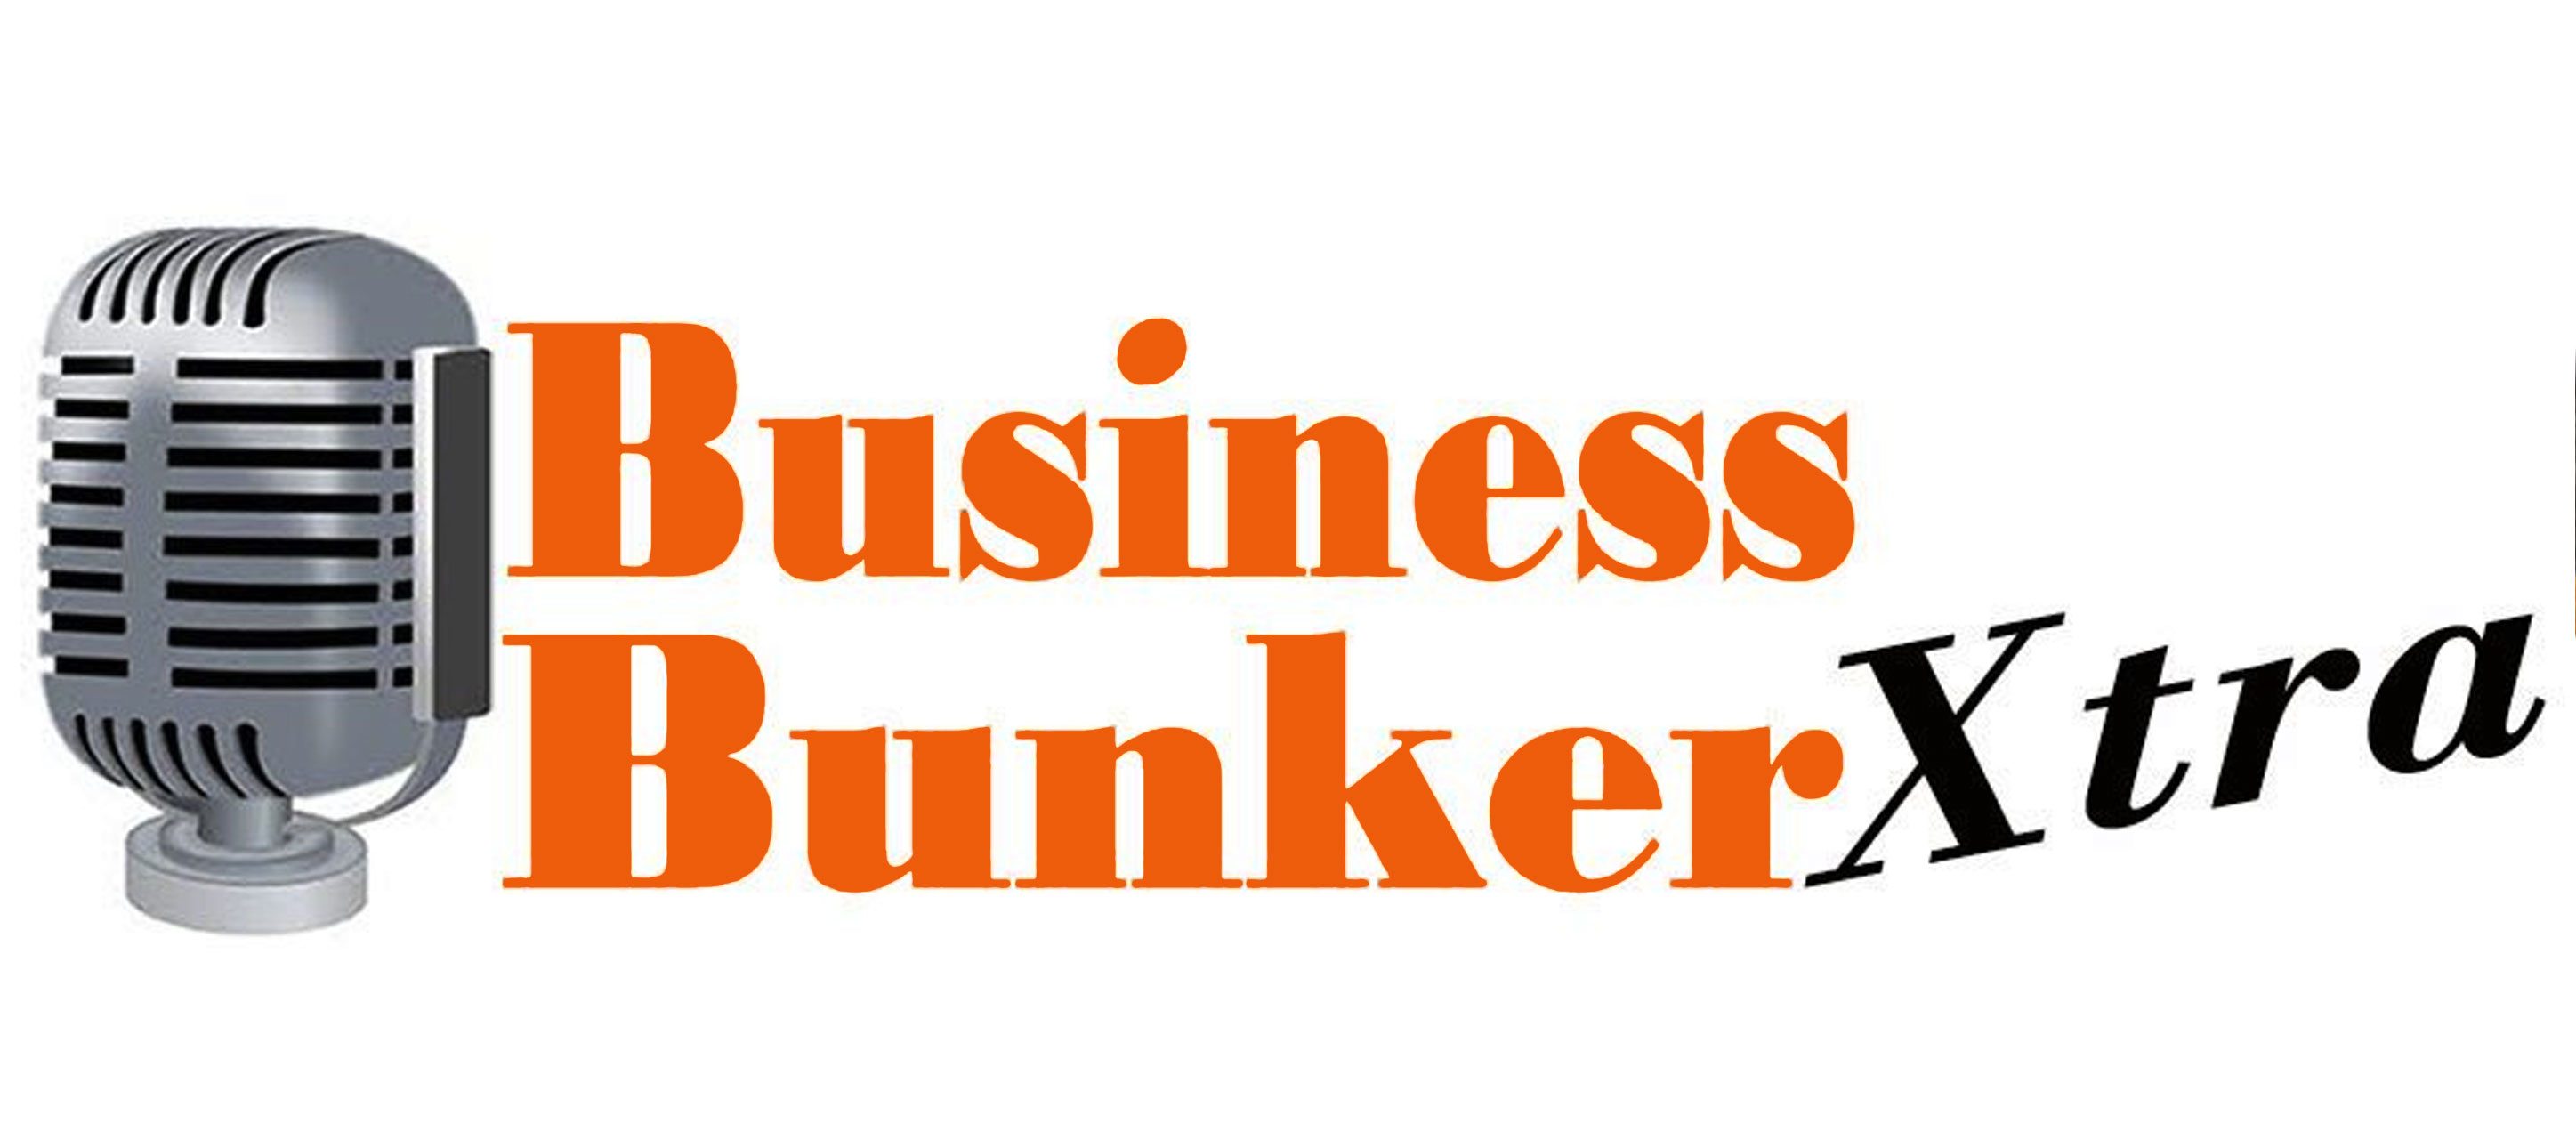 Business Bunker Xtra Logo